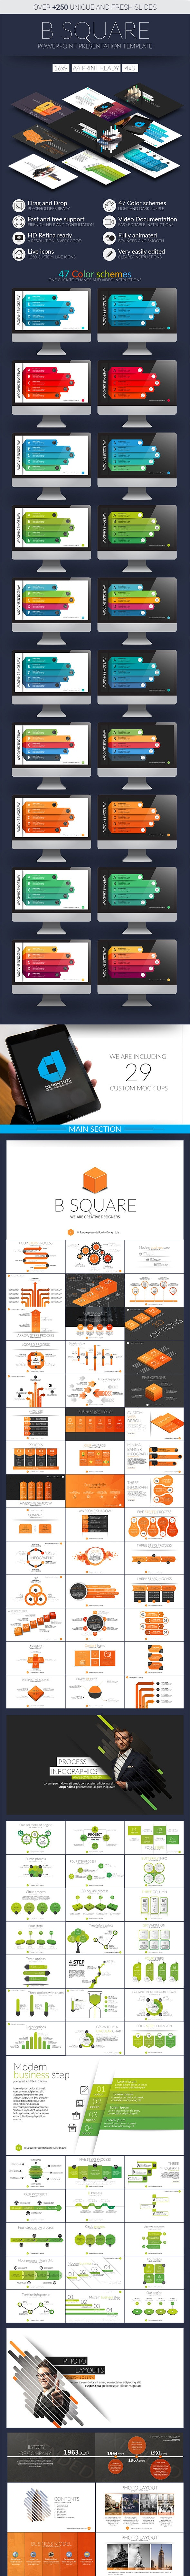 B Square Powerpoint Presentation Template - Business PowerPoint Templates